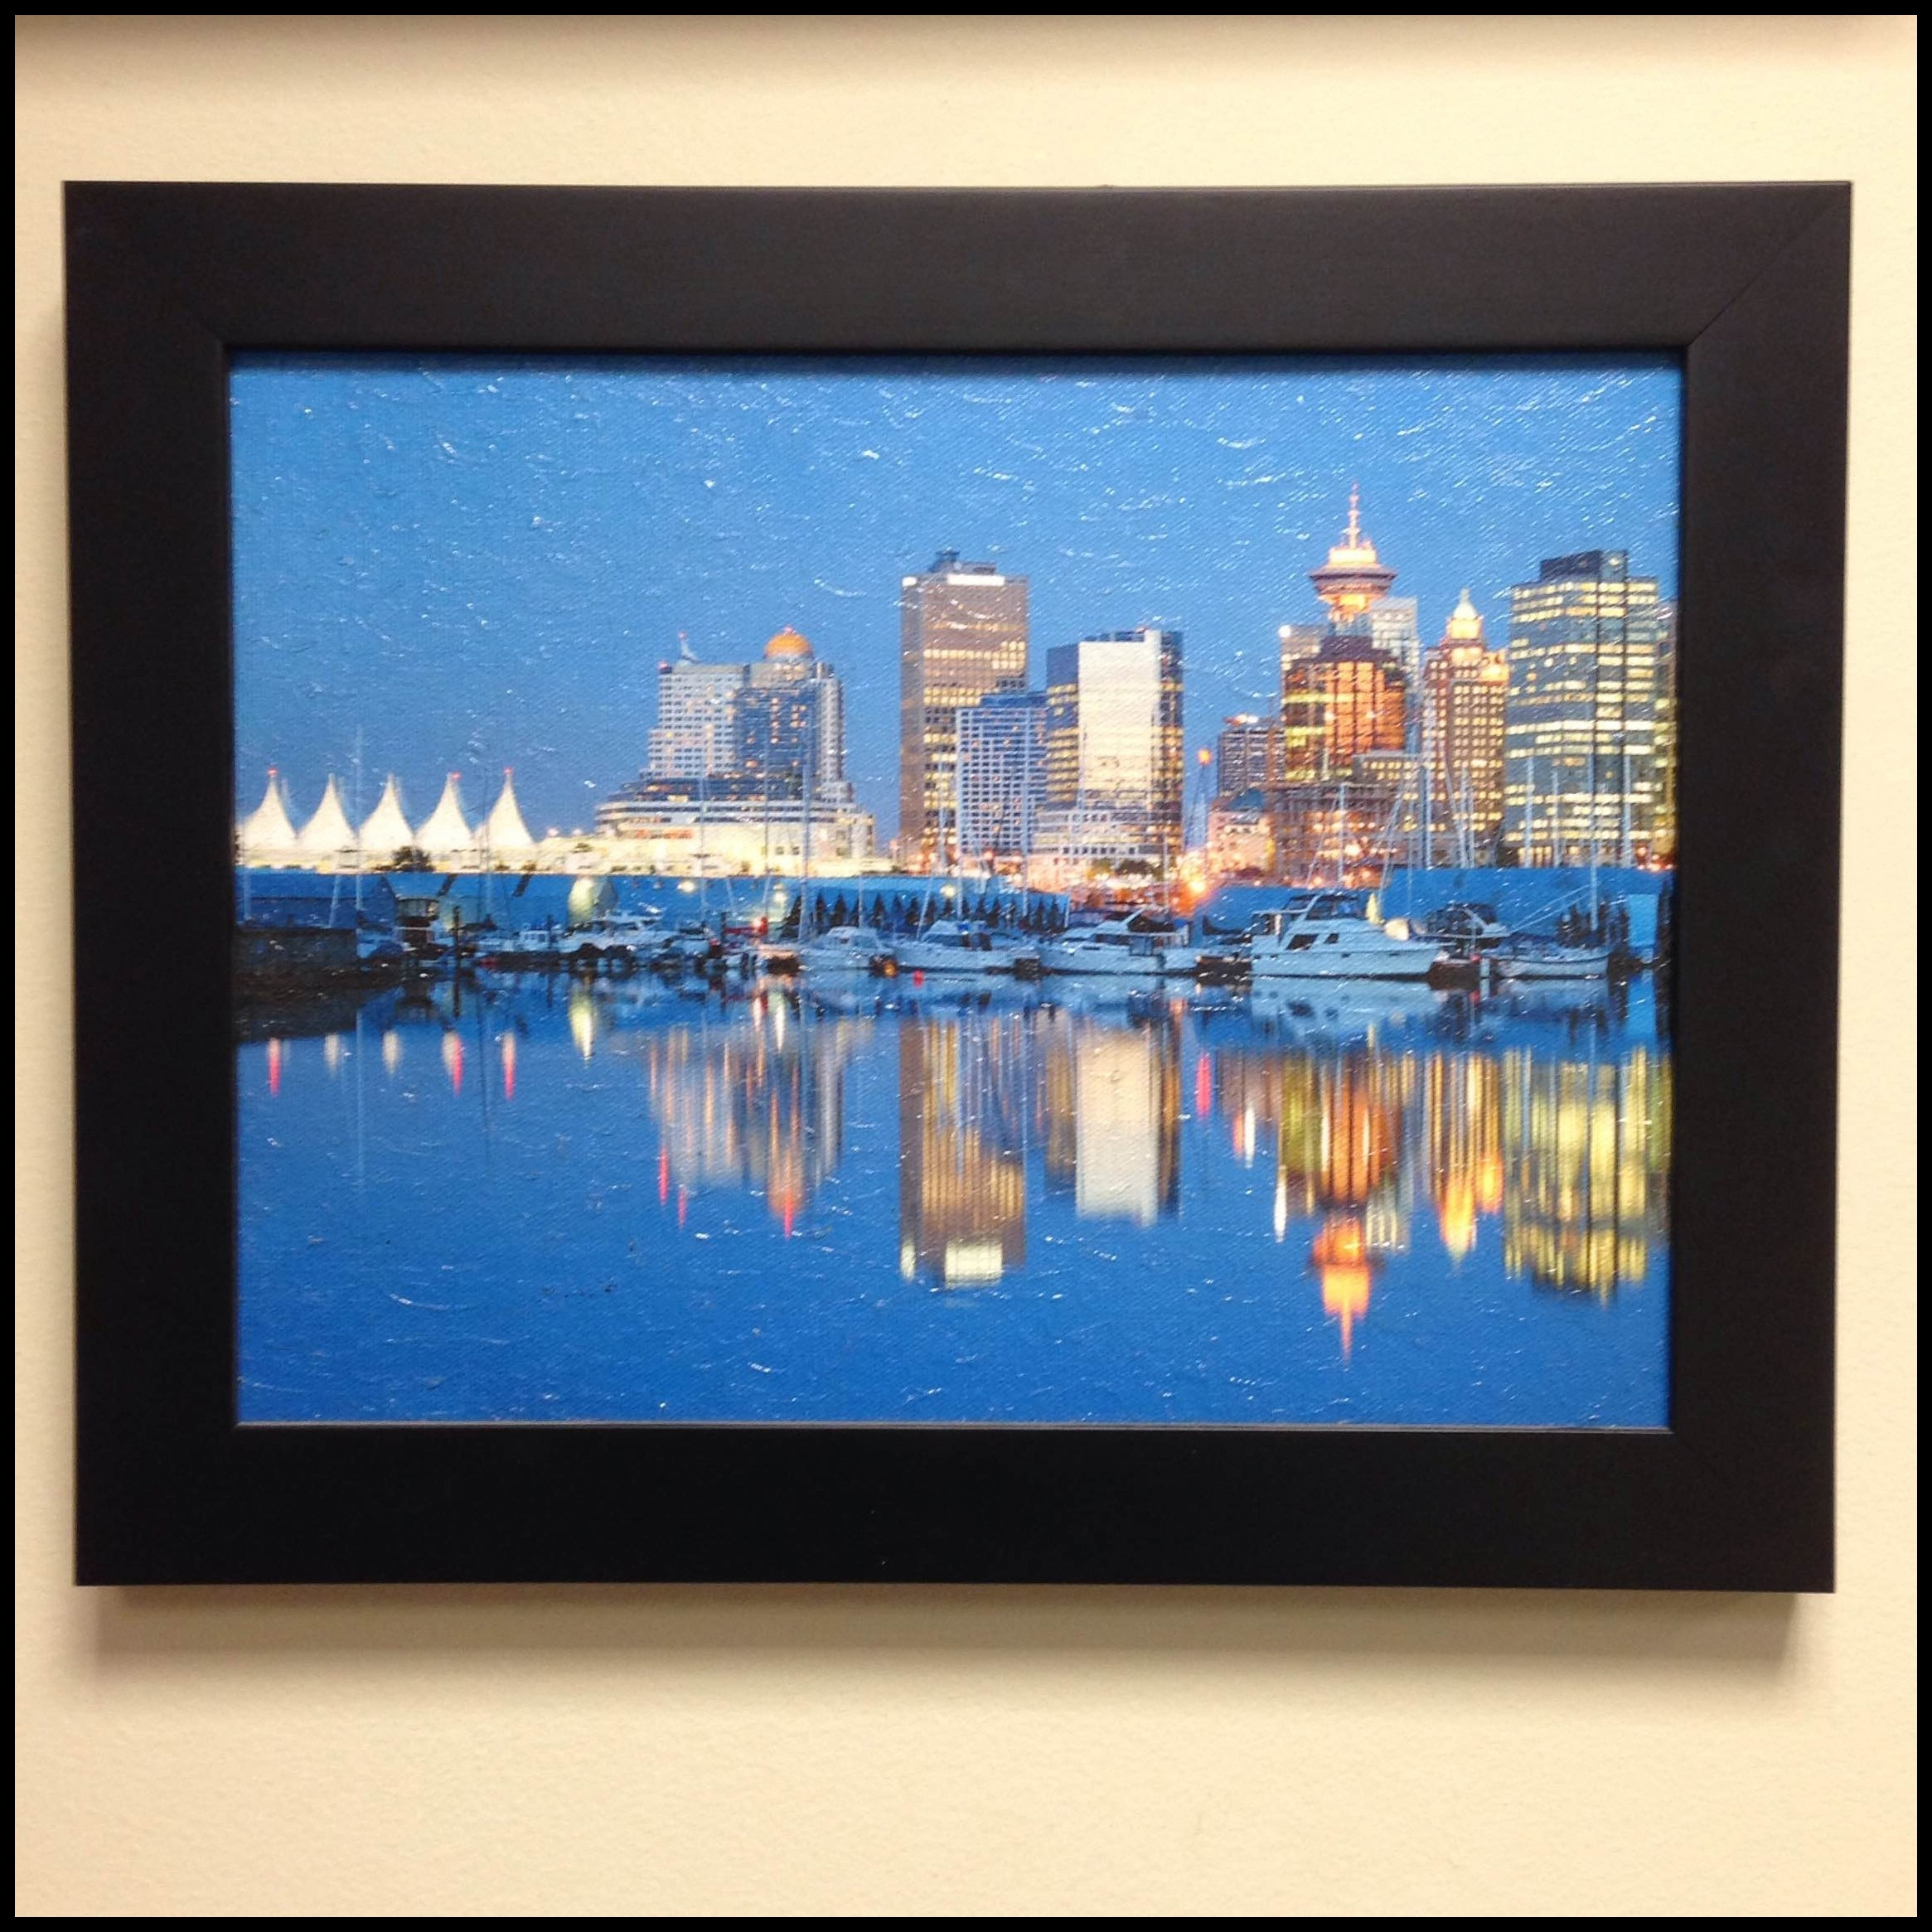 Selecting The Best Frame For Your Canvas Print Or Fine Art With Regard To Latest Black Framed Art Prints (View 6 of 15)